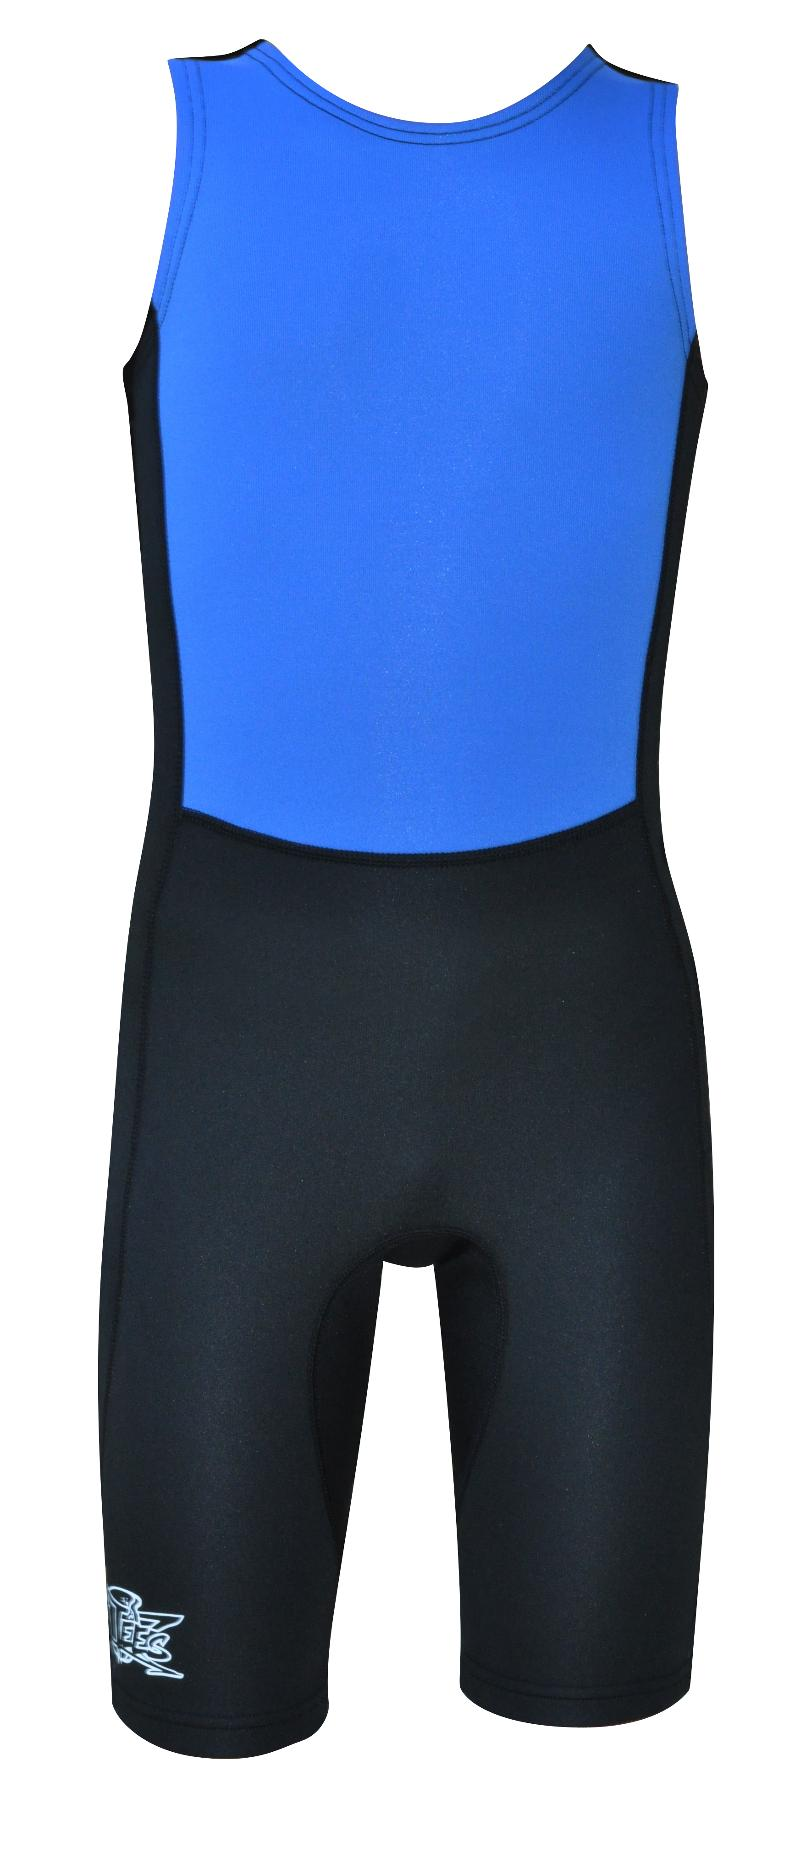 Kids Training Suit sizes 6, 8 and 10